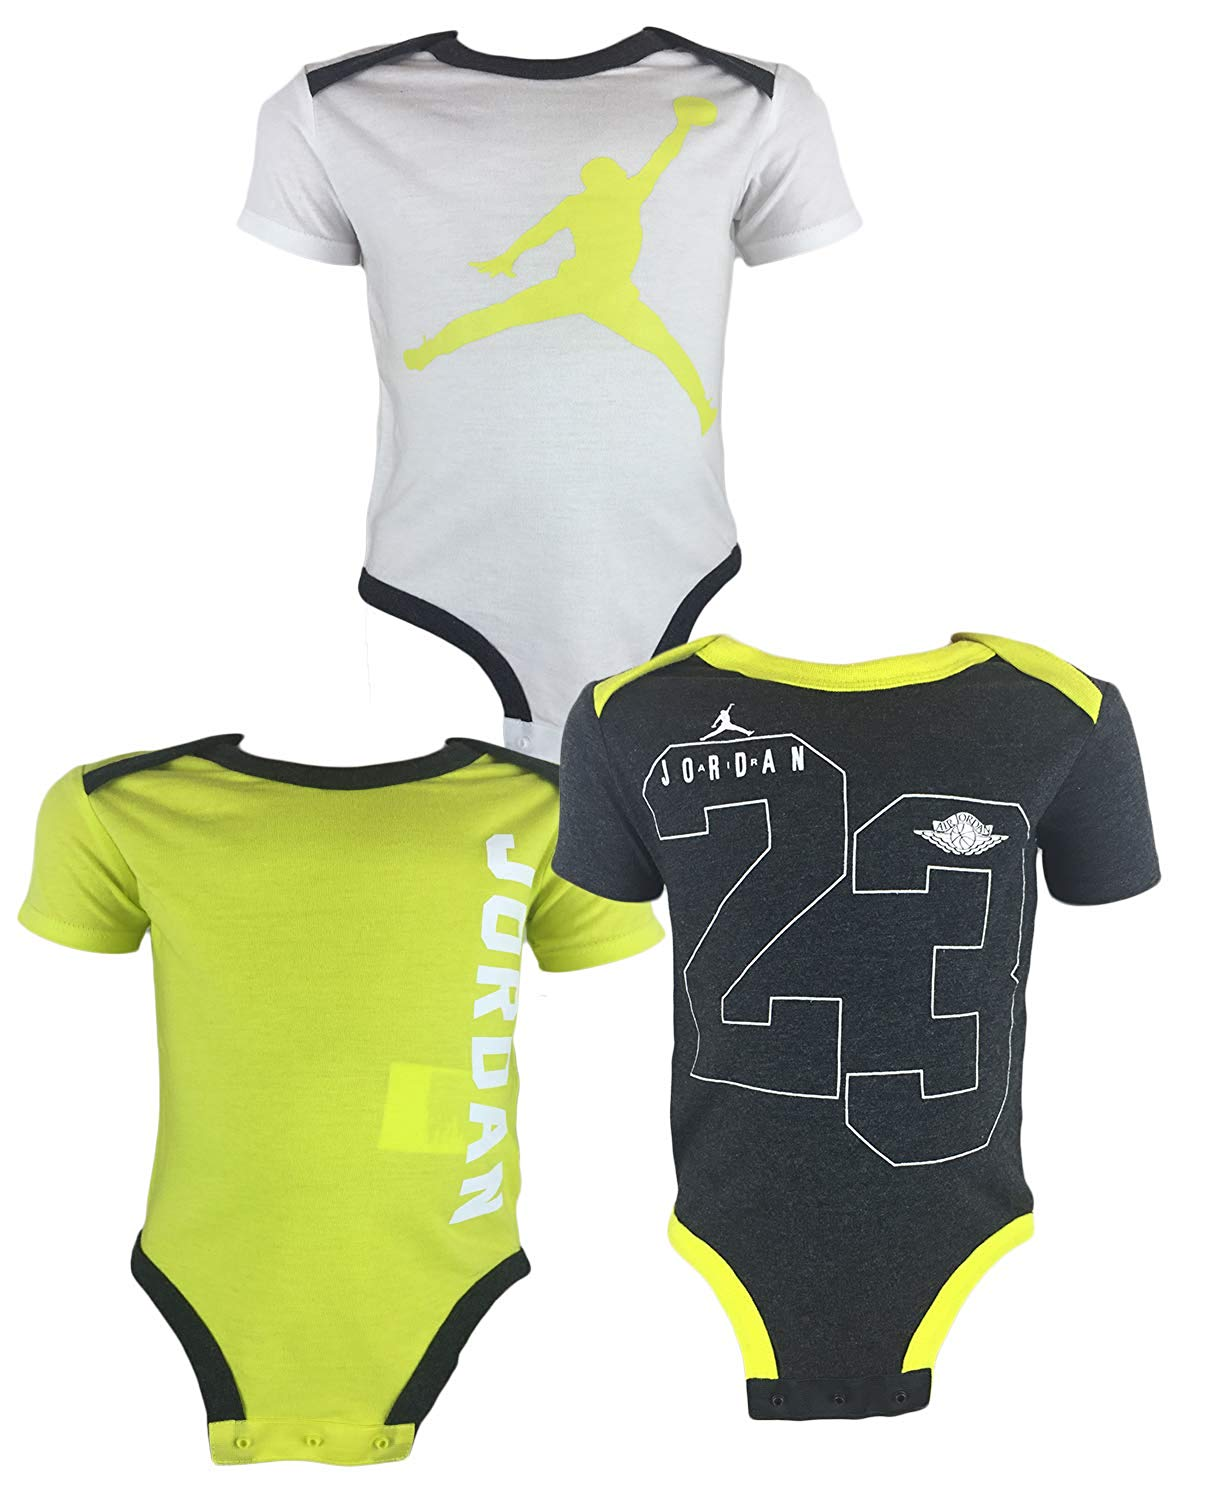 973f590216f NIKE Air Jordan Toddler Child Bodysuit Set - Baby Clothes, Baby ...